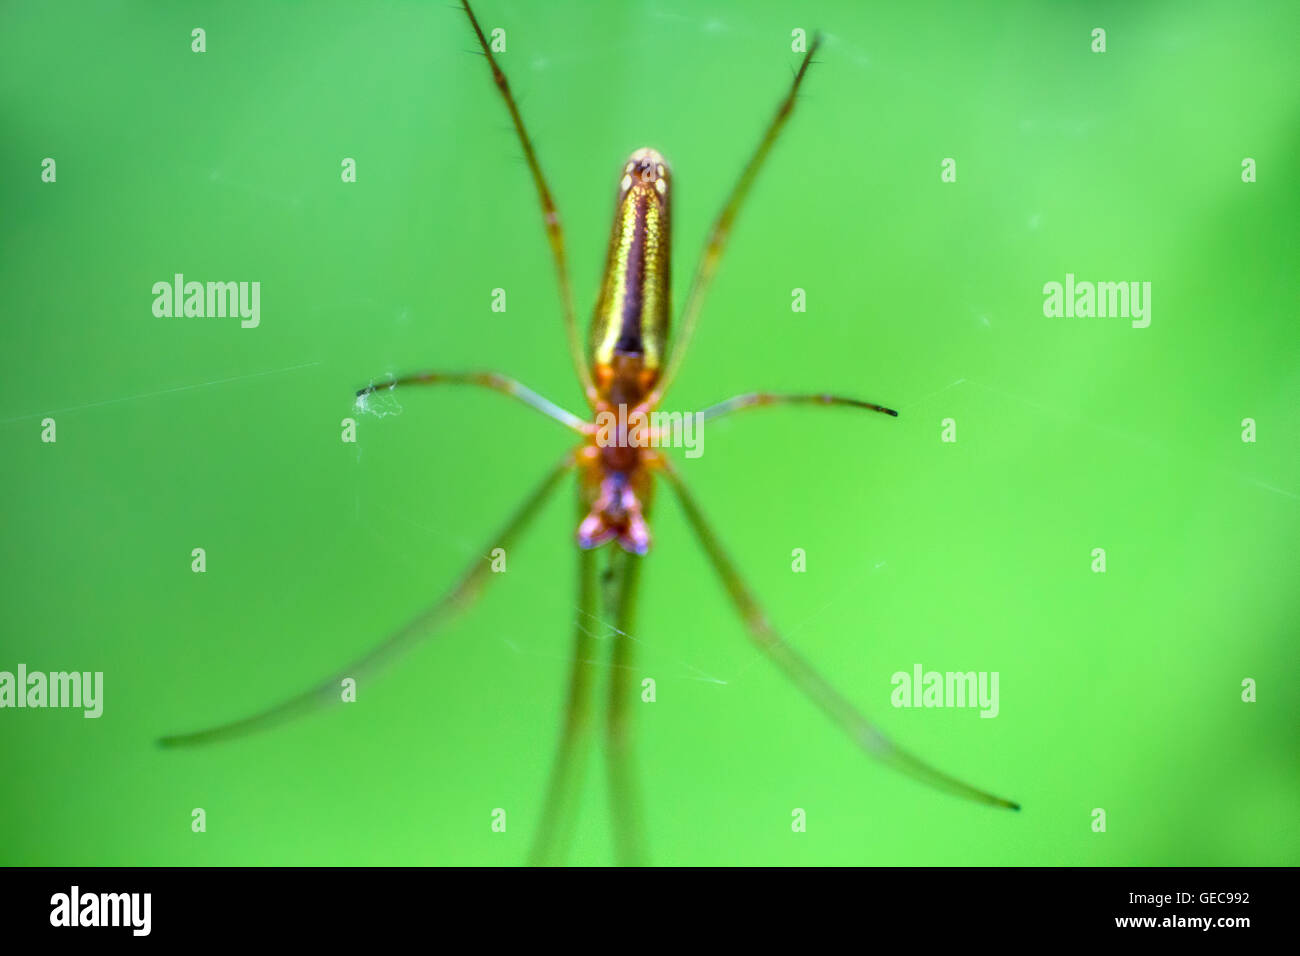 tangle-web spiders (Theridiidae) waiting for prey in center of web. Macro - Stock Image